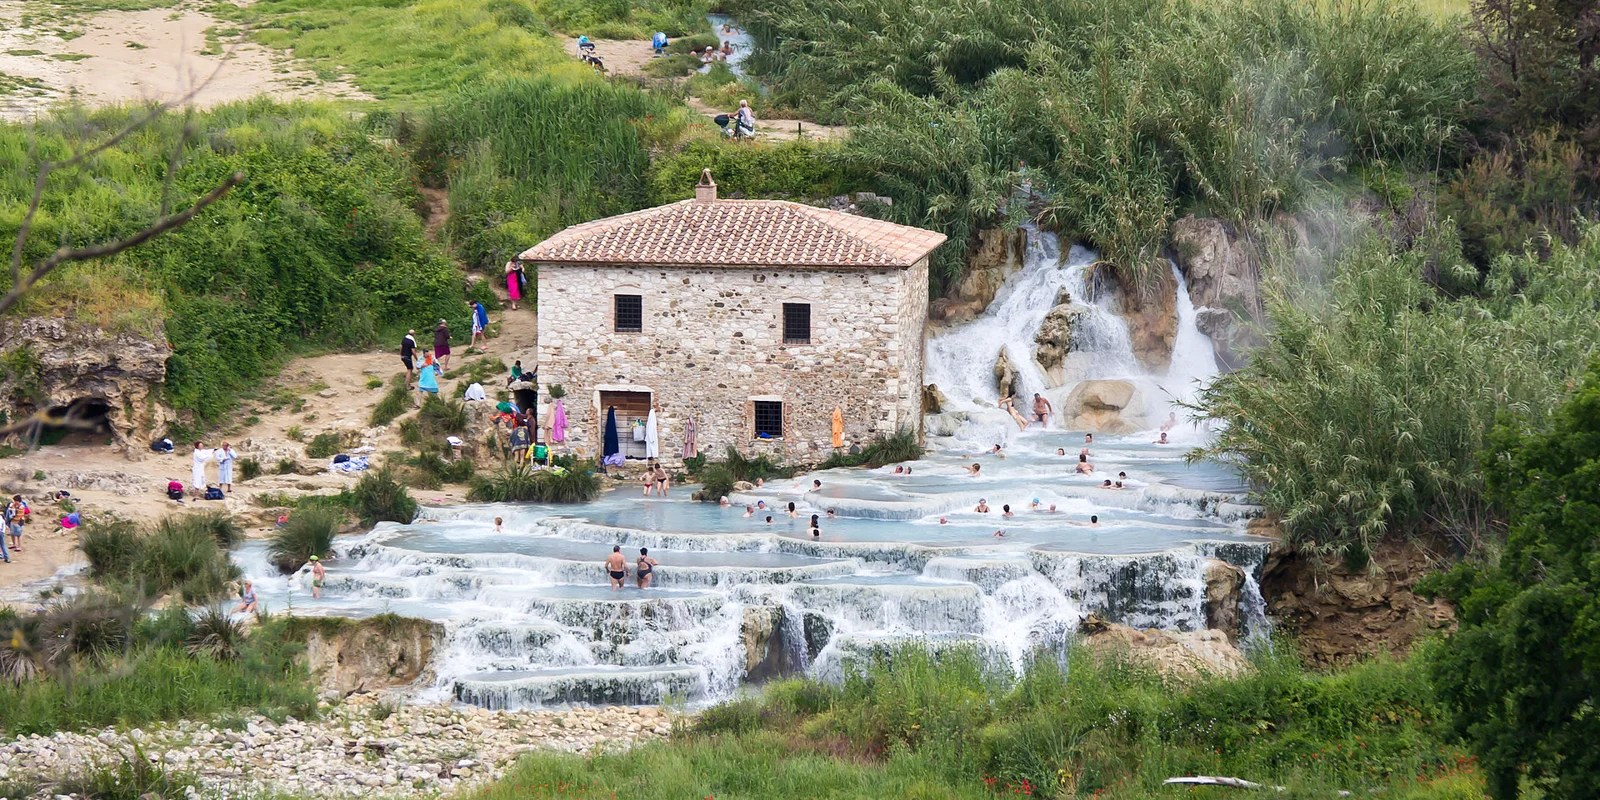 The falls at Terme di Saturnia. (Photo via Wikimedia Commons)